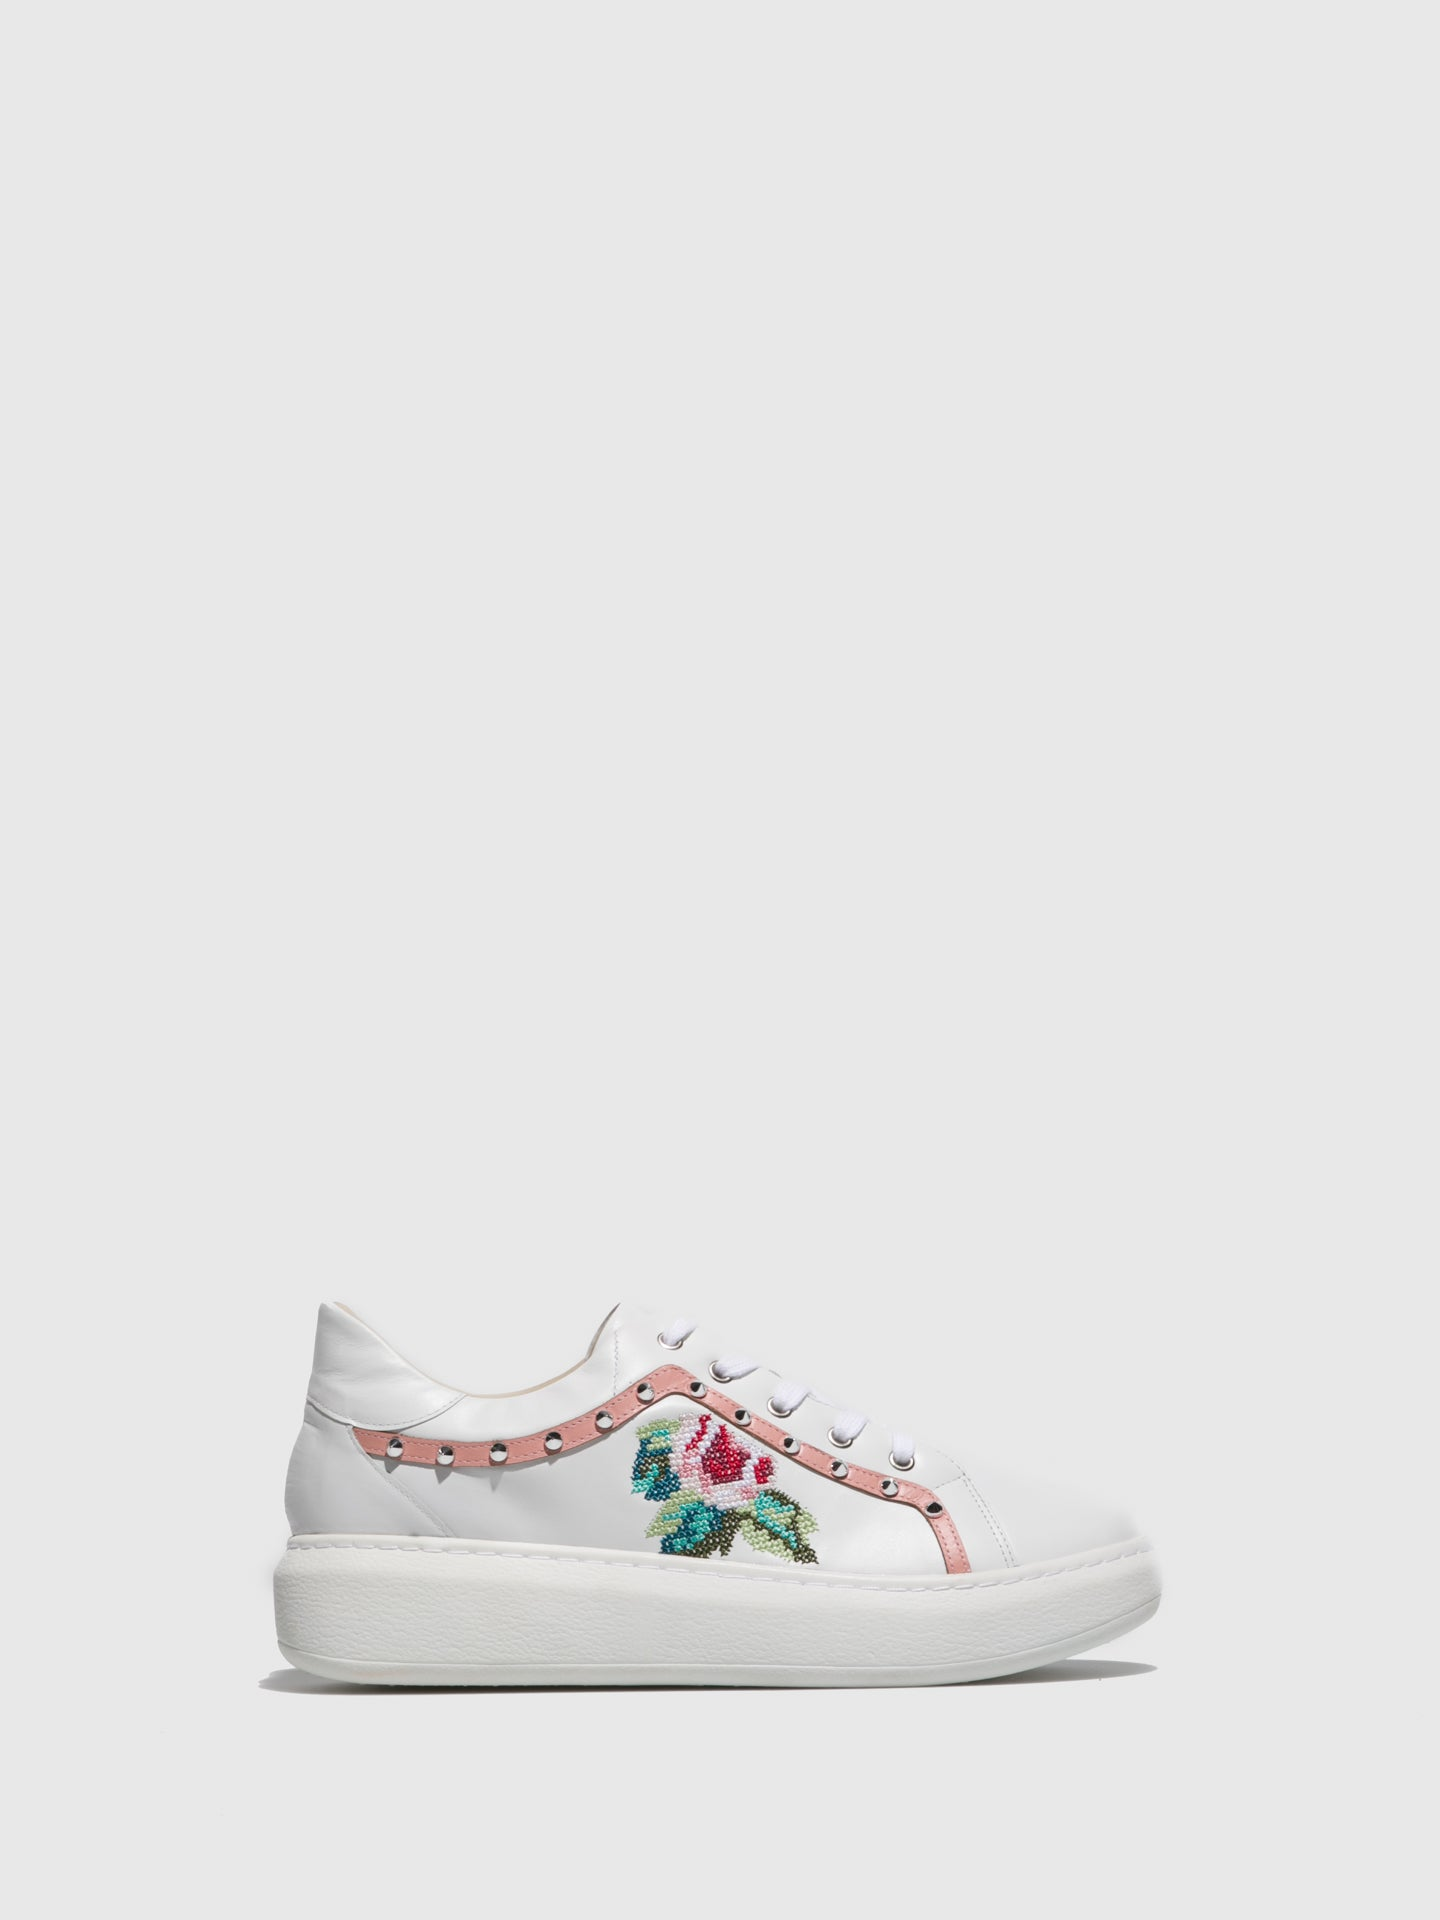 PARODI PASSION Pink White Embroidered Trainers